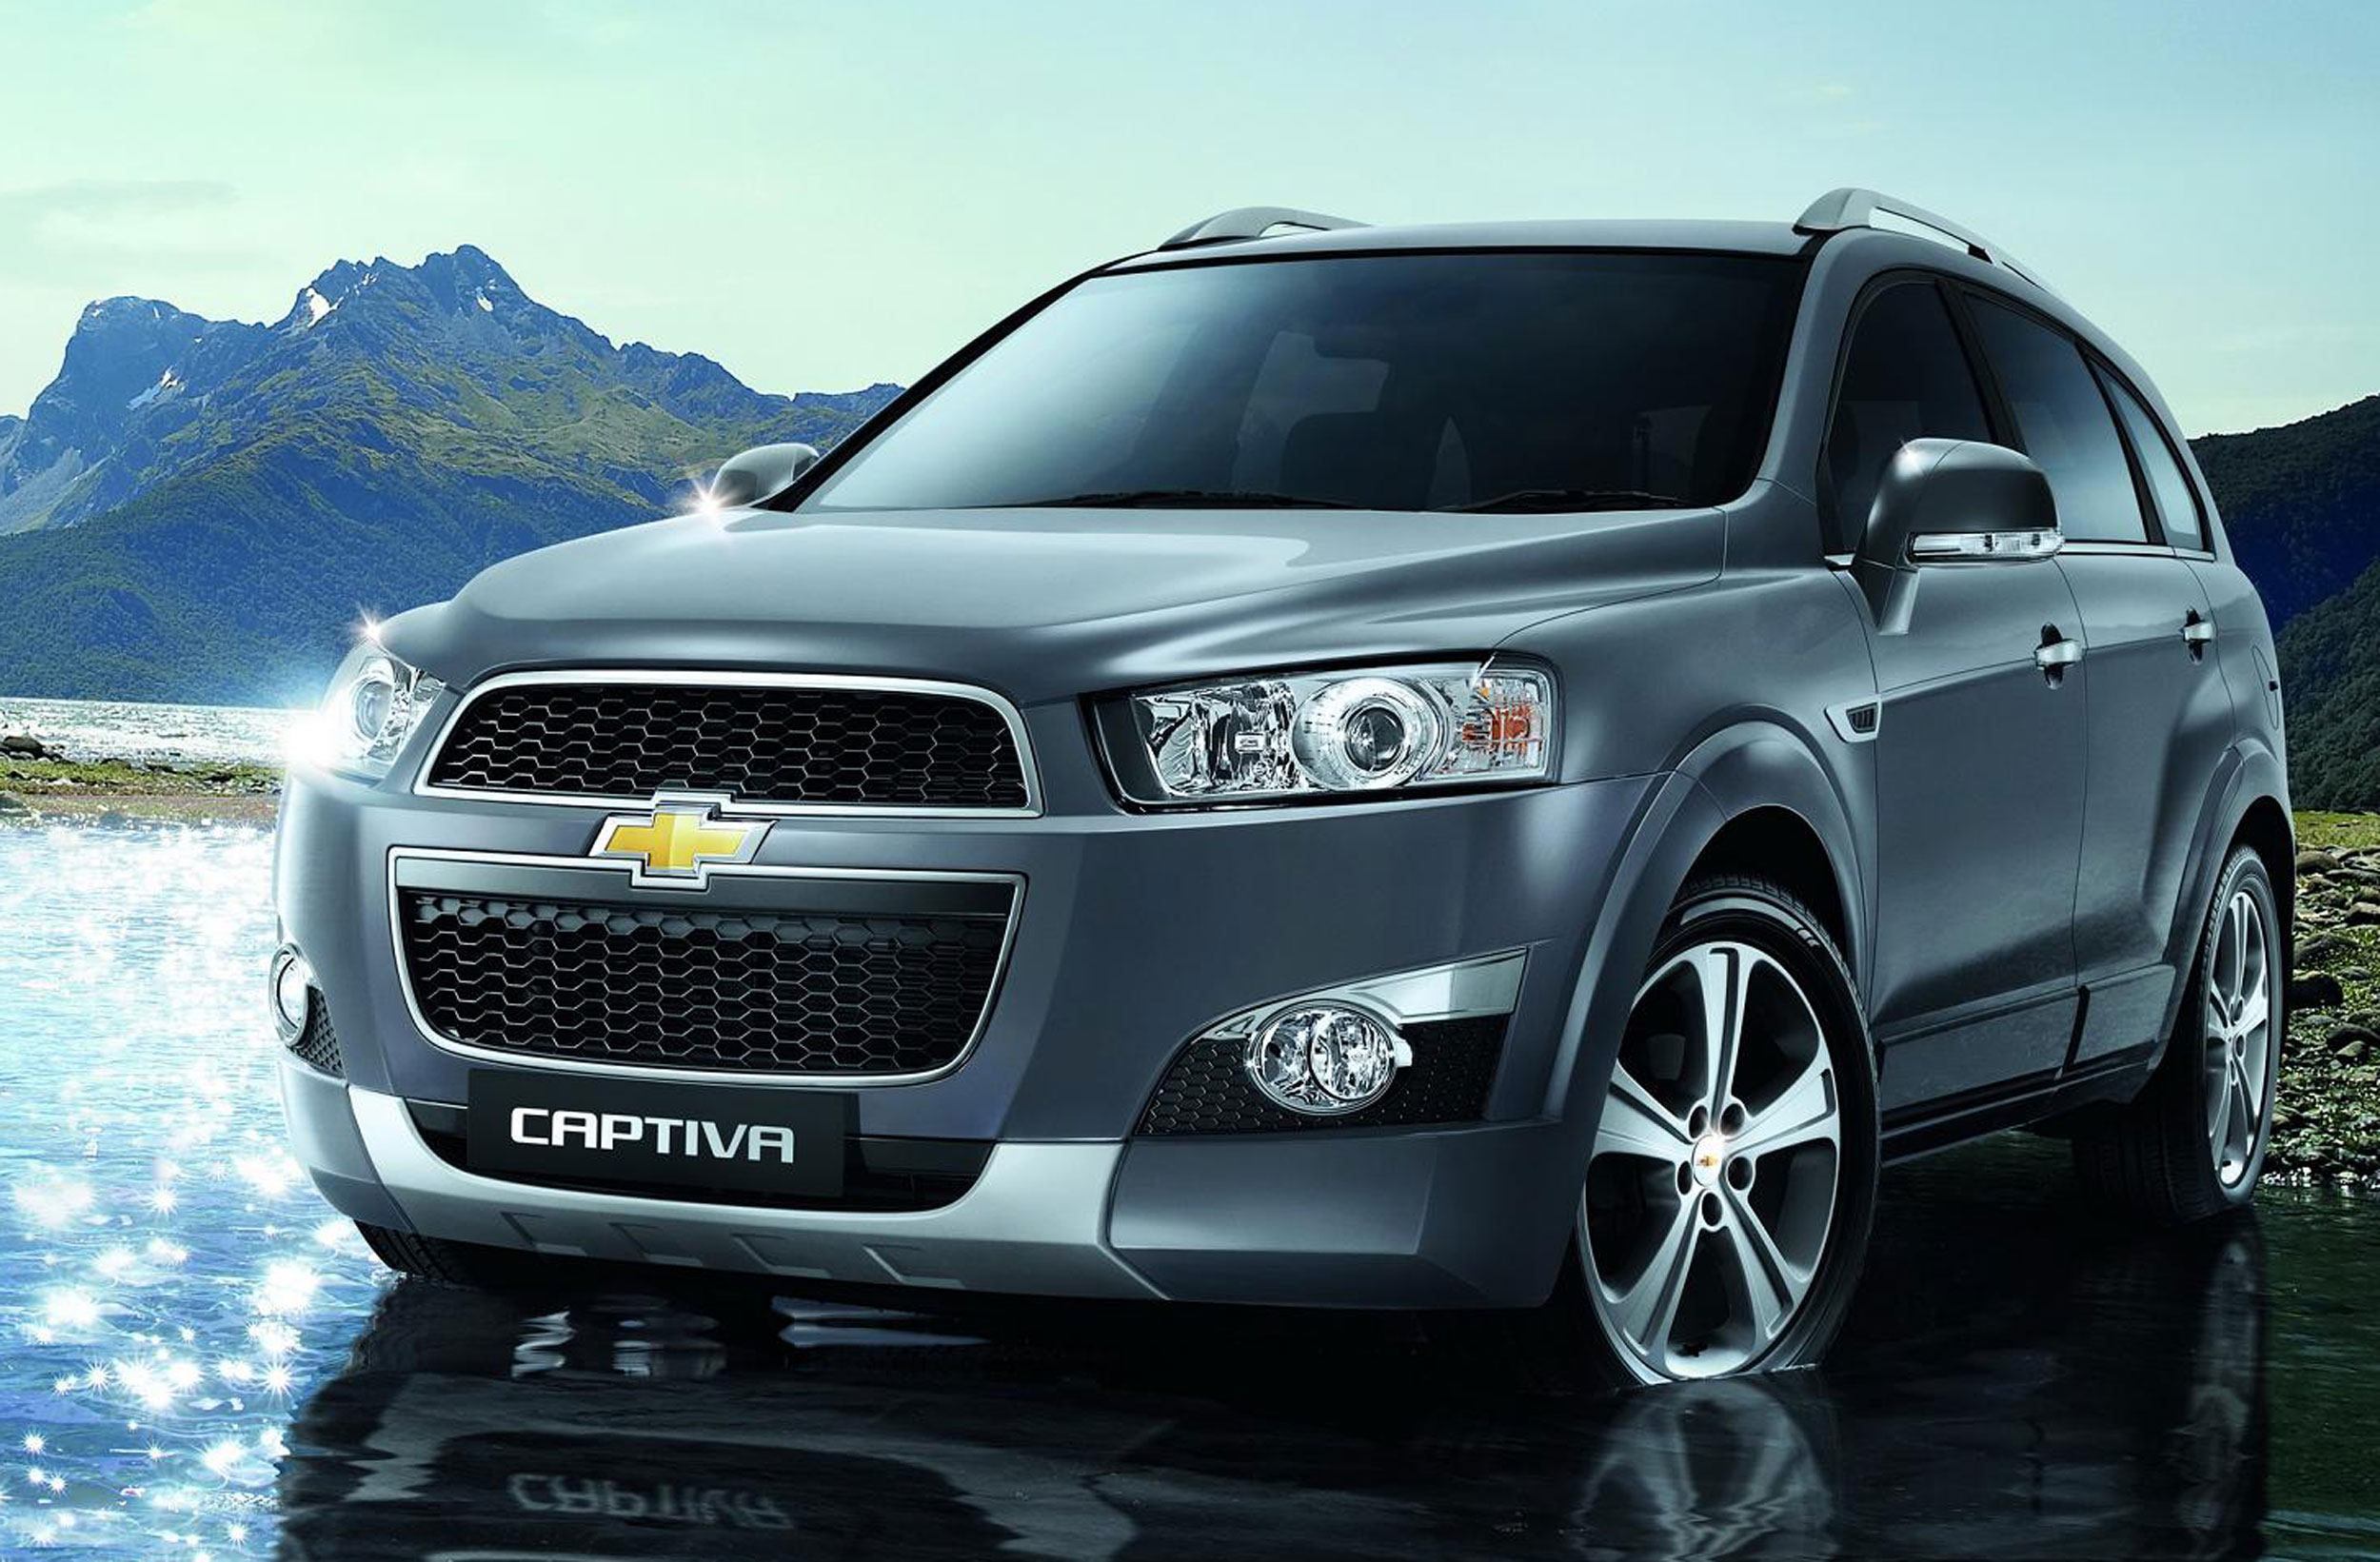 chevrolet captiva pictures #9